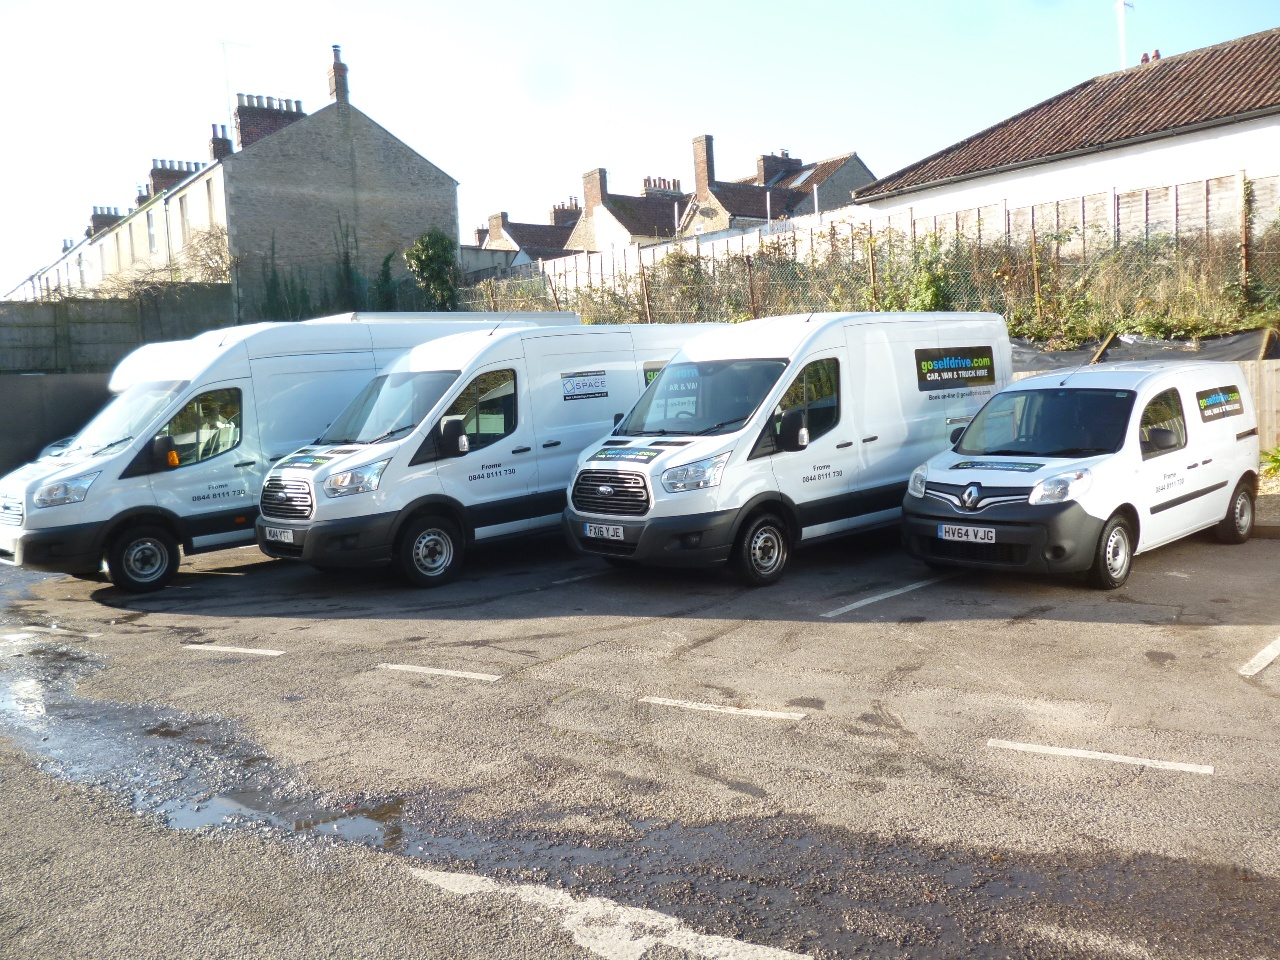 Here at go self drive we offer small cars from 30 00 day a wide range of vans from 45 00 day people carriers and even trucks